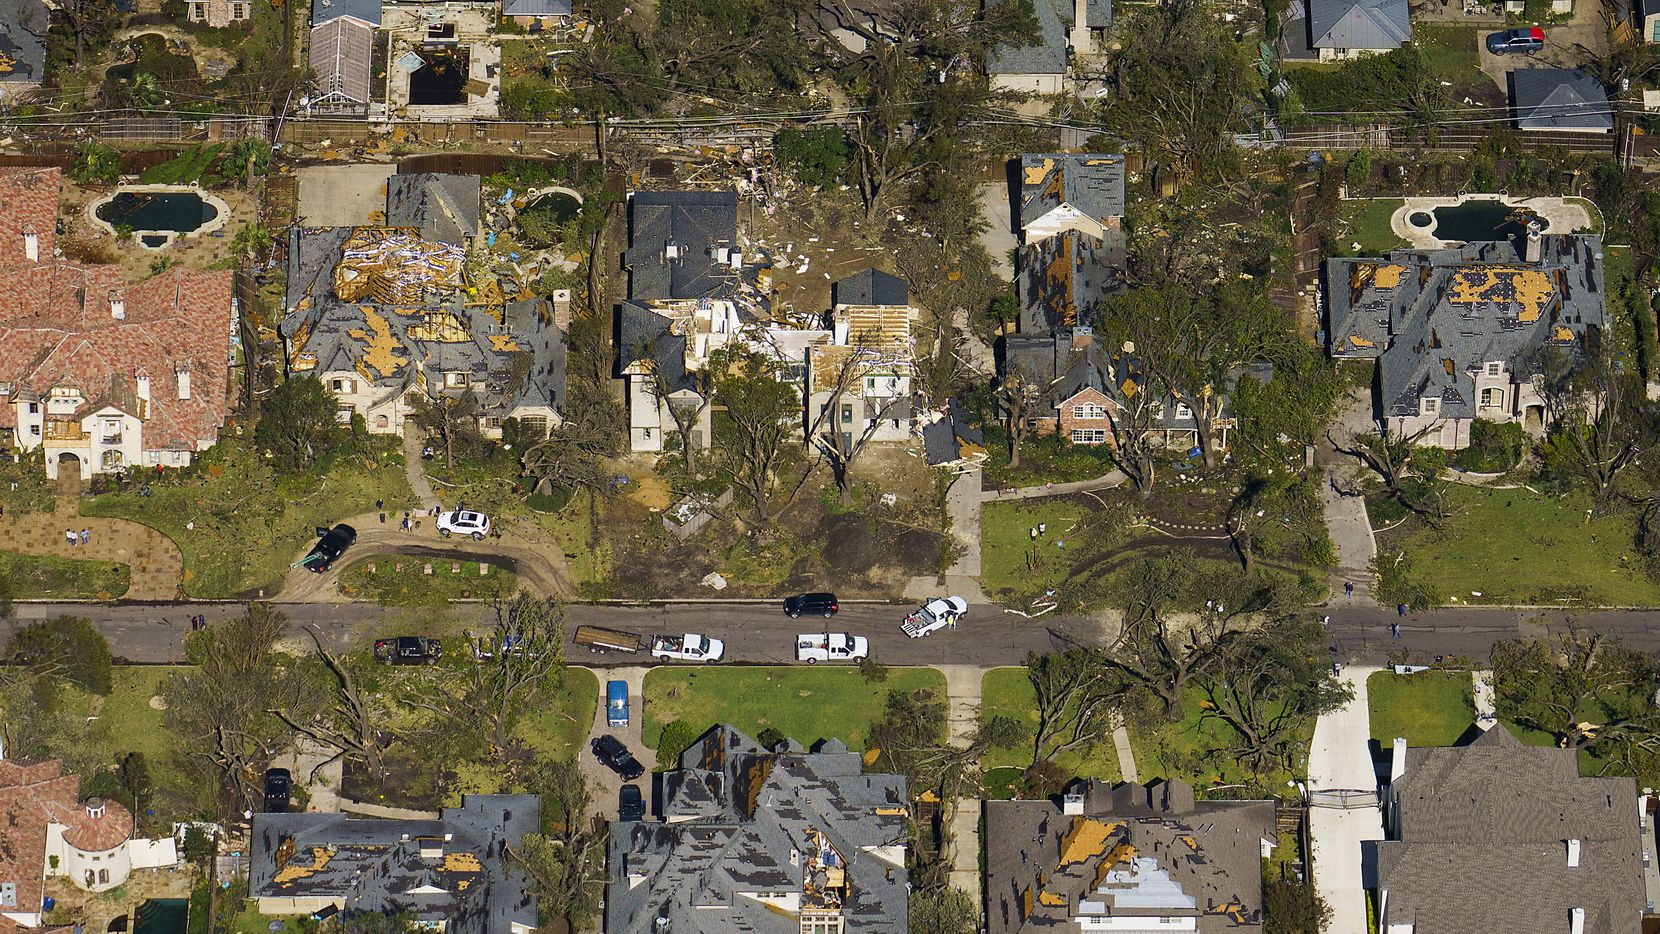 Damaged homes just south of Royal Lane and just west of Hillcrest Road is seen in aerial view of tornado damage on Monday, Oct. 21, 2019, in Dallas.